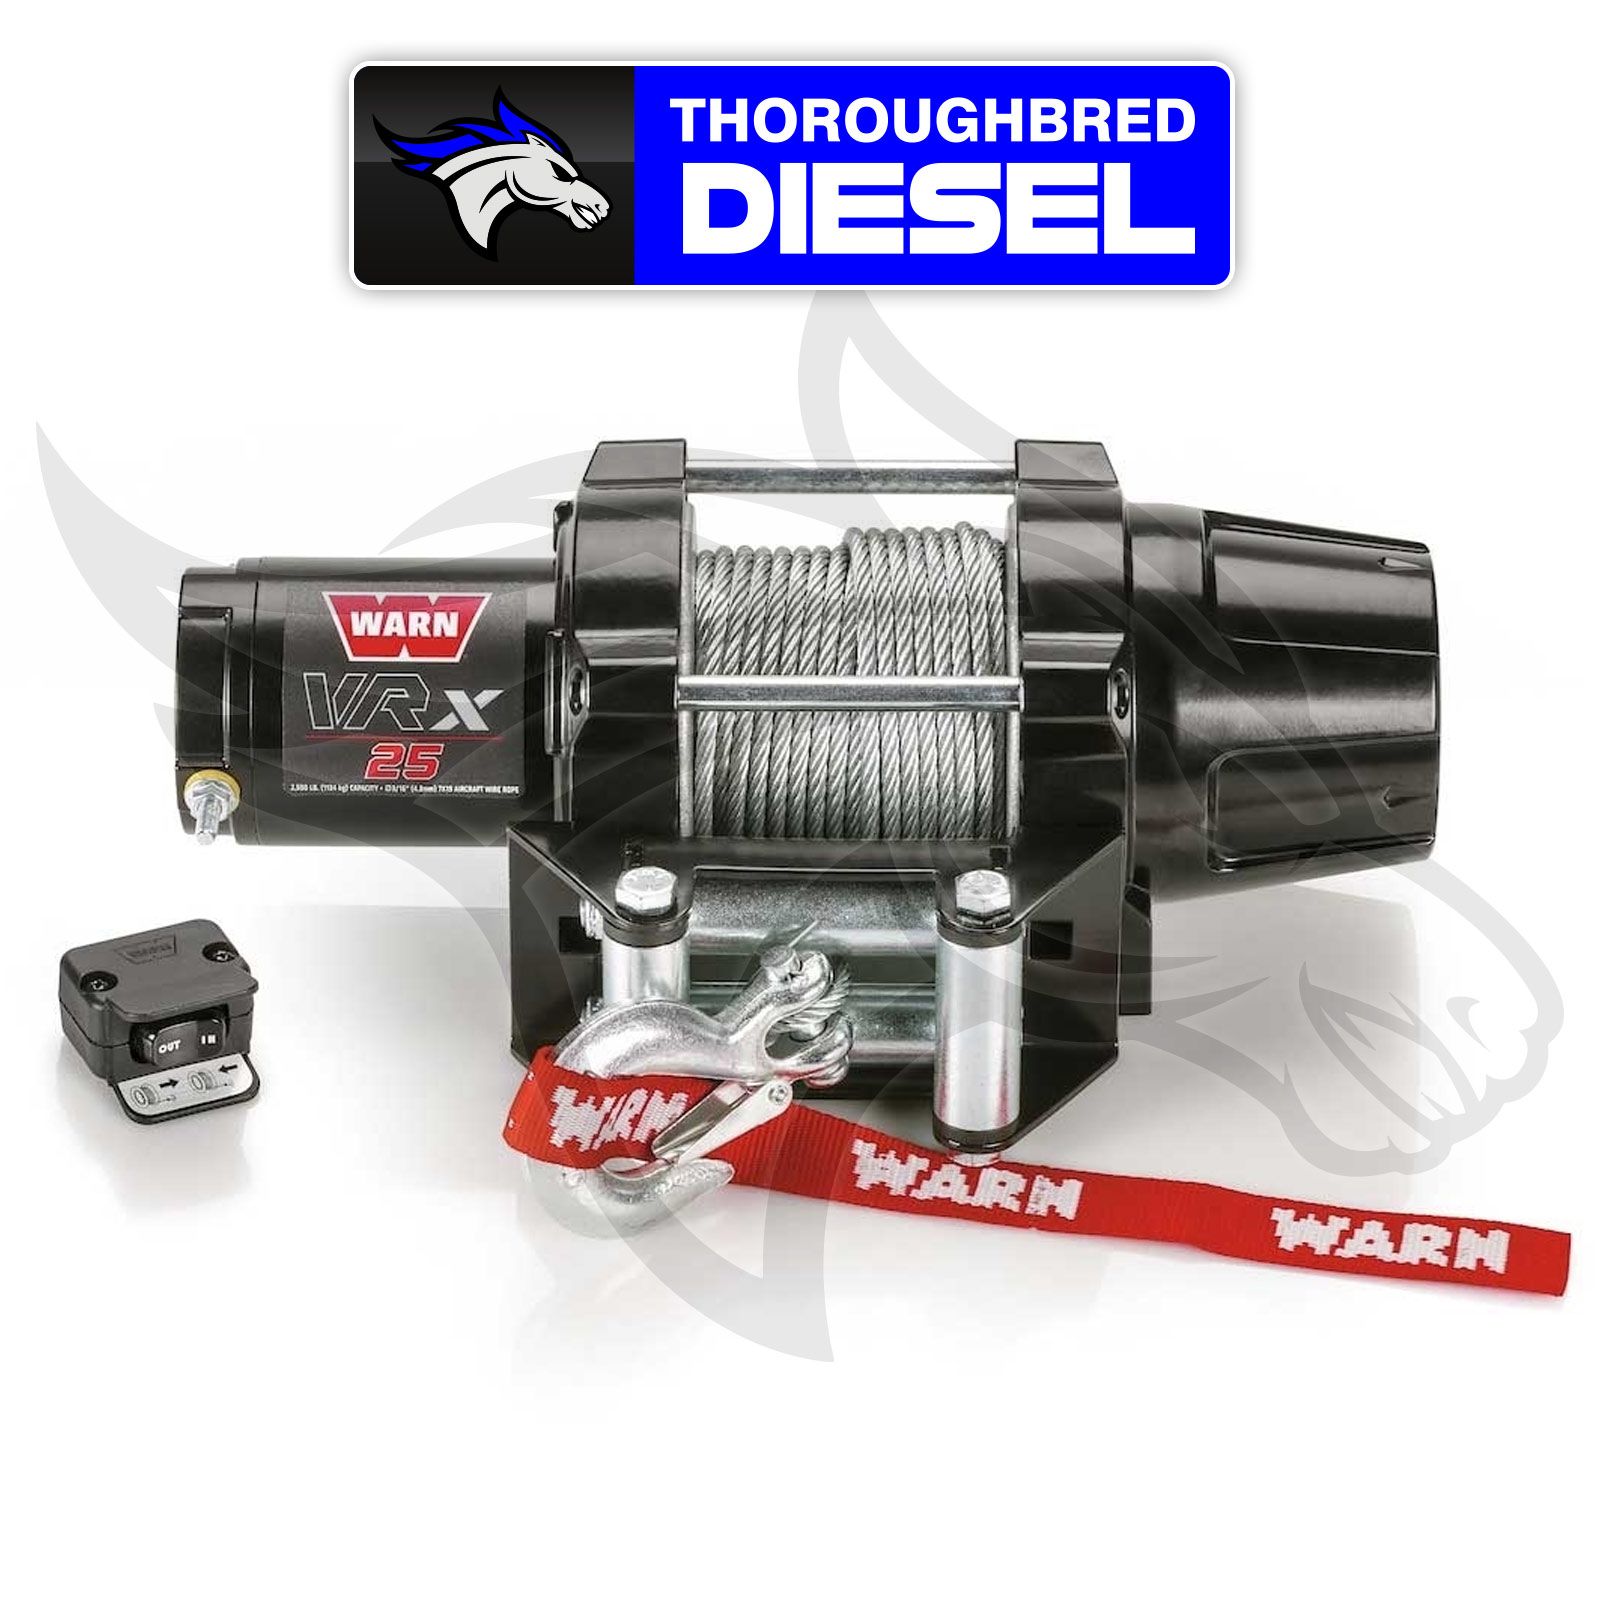 Cable Warn 101025 VRX 25 Electric Winch 2,500 lbs. Roller Fairlead 50 ft